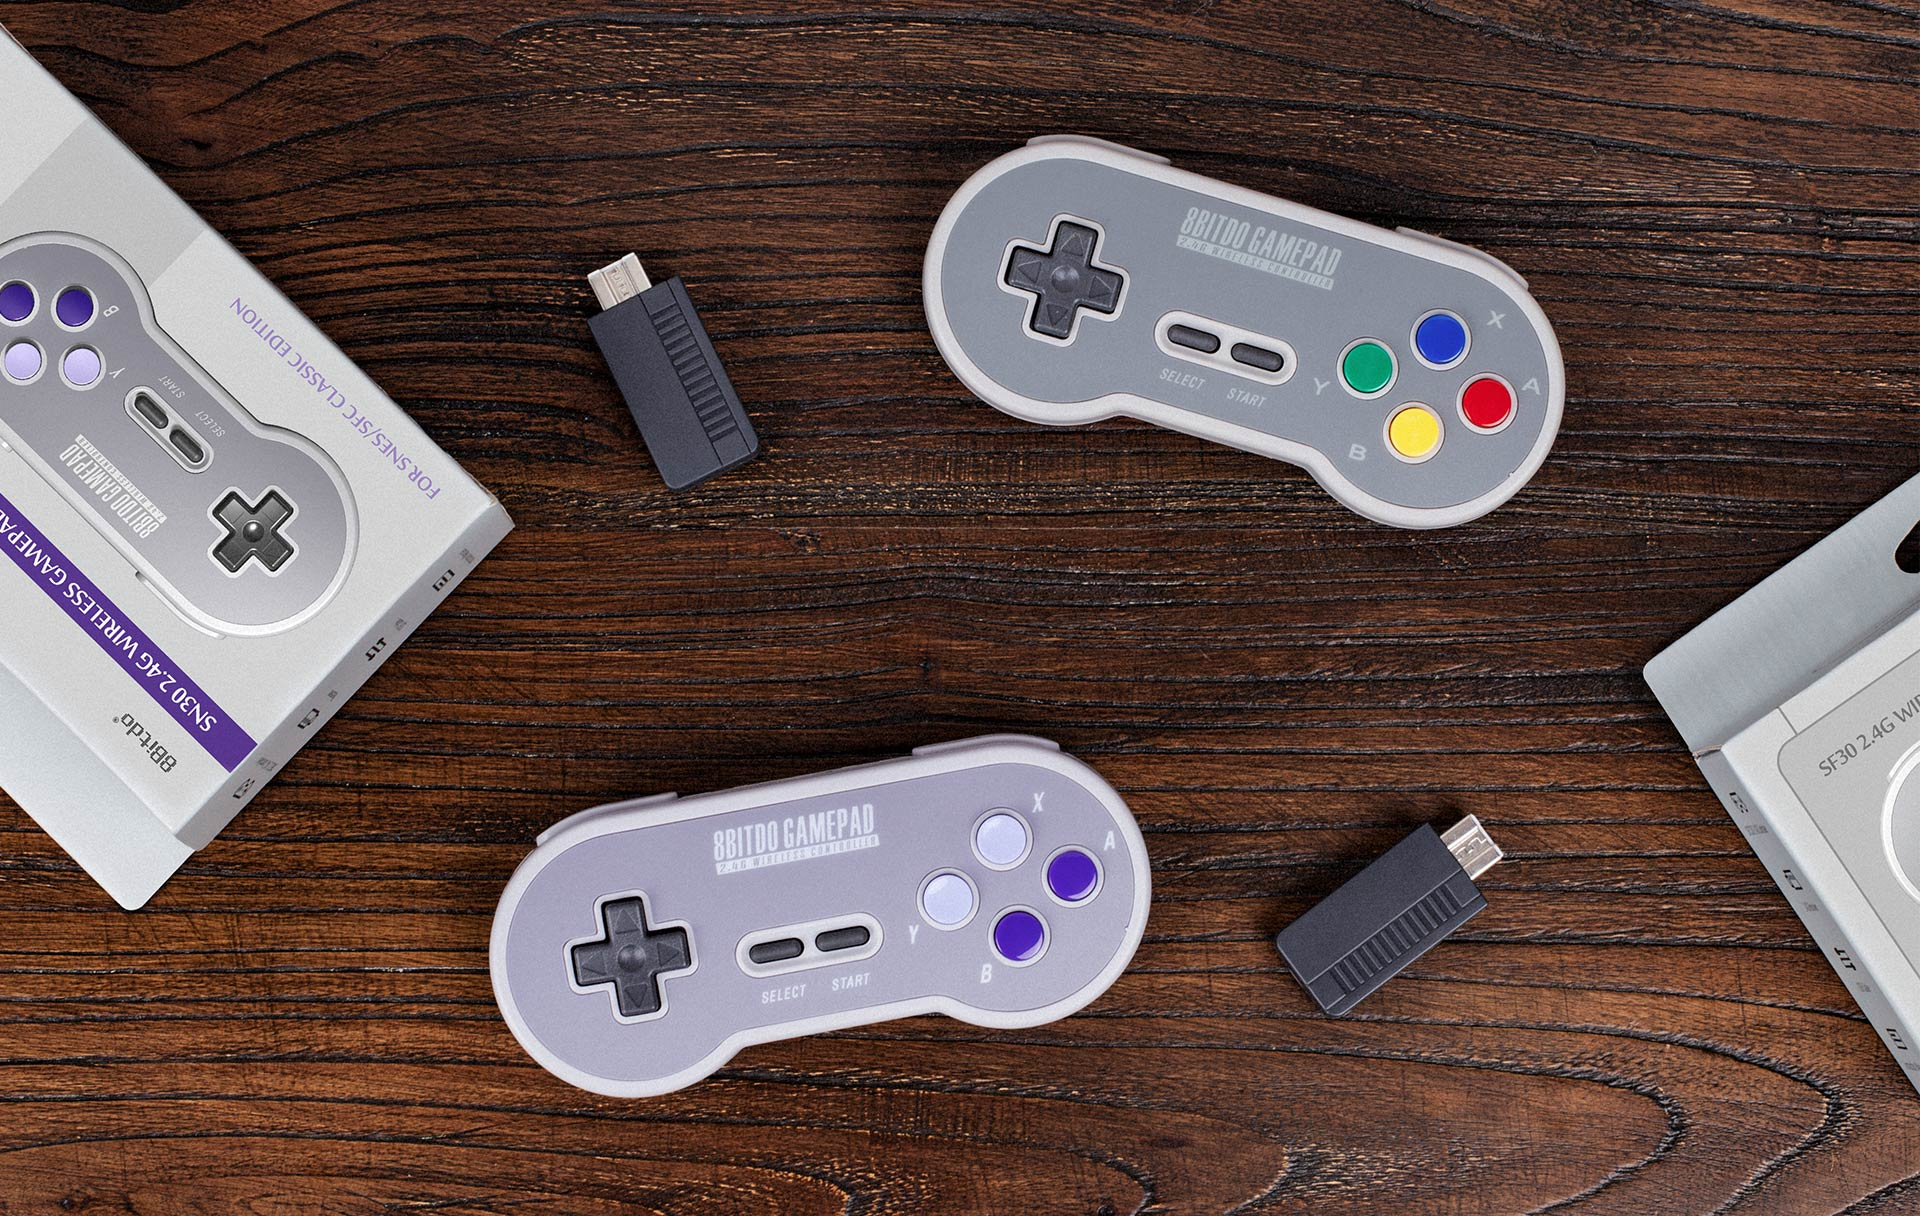 Sn30 2 4g And Sf30 2 4g For Snes And Sfc Classic Edition